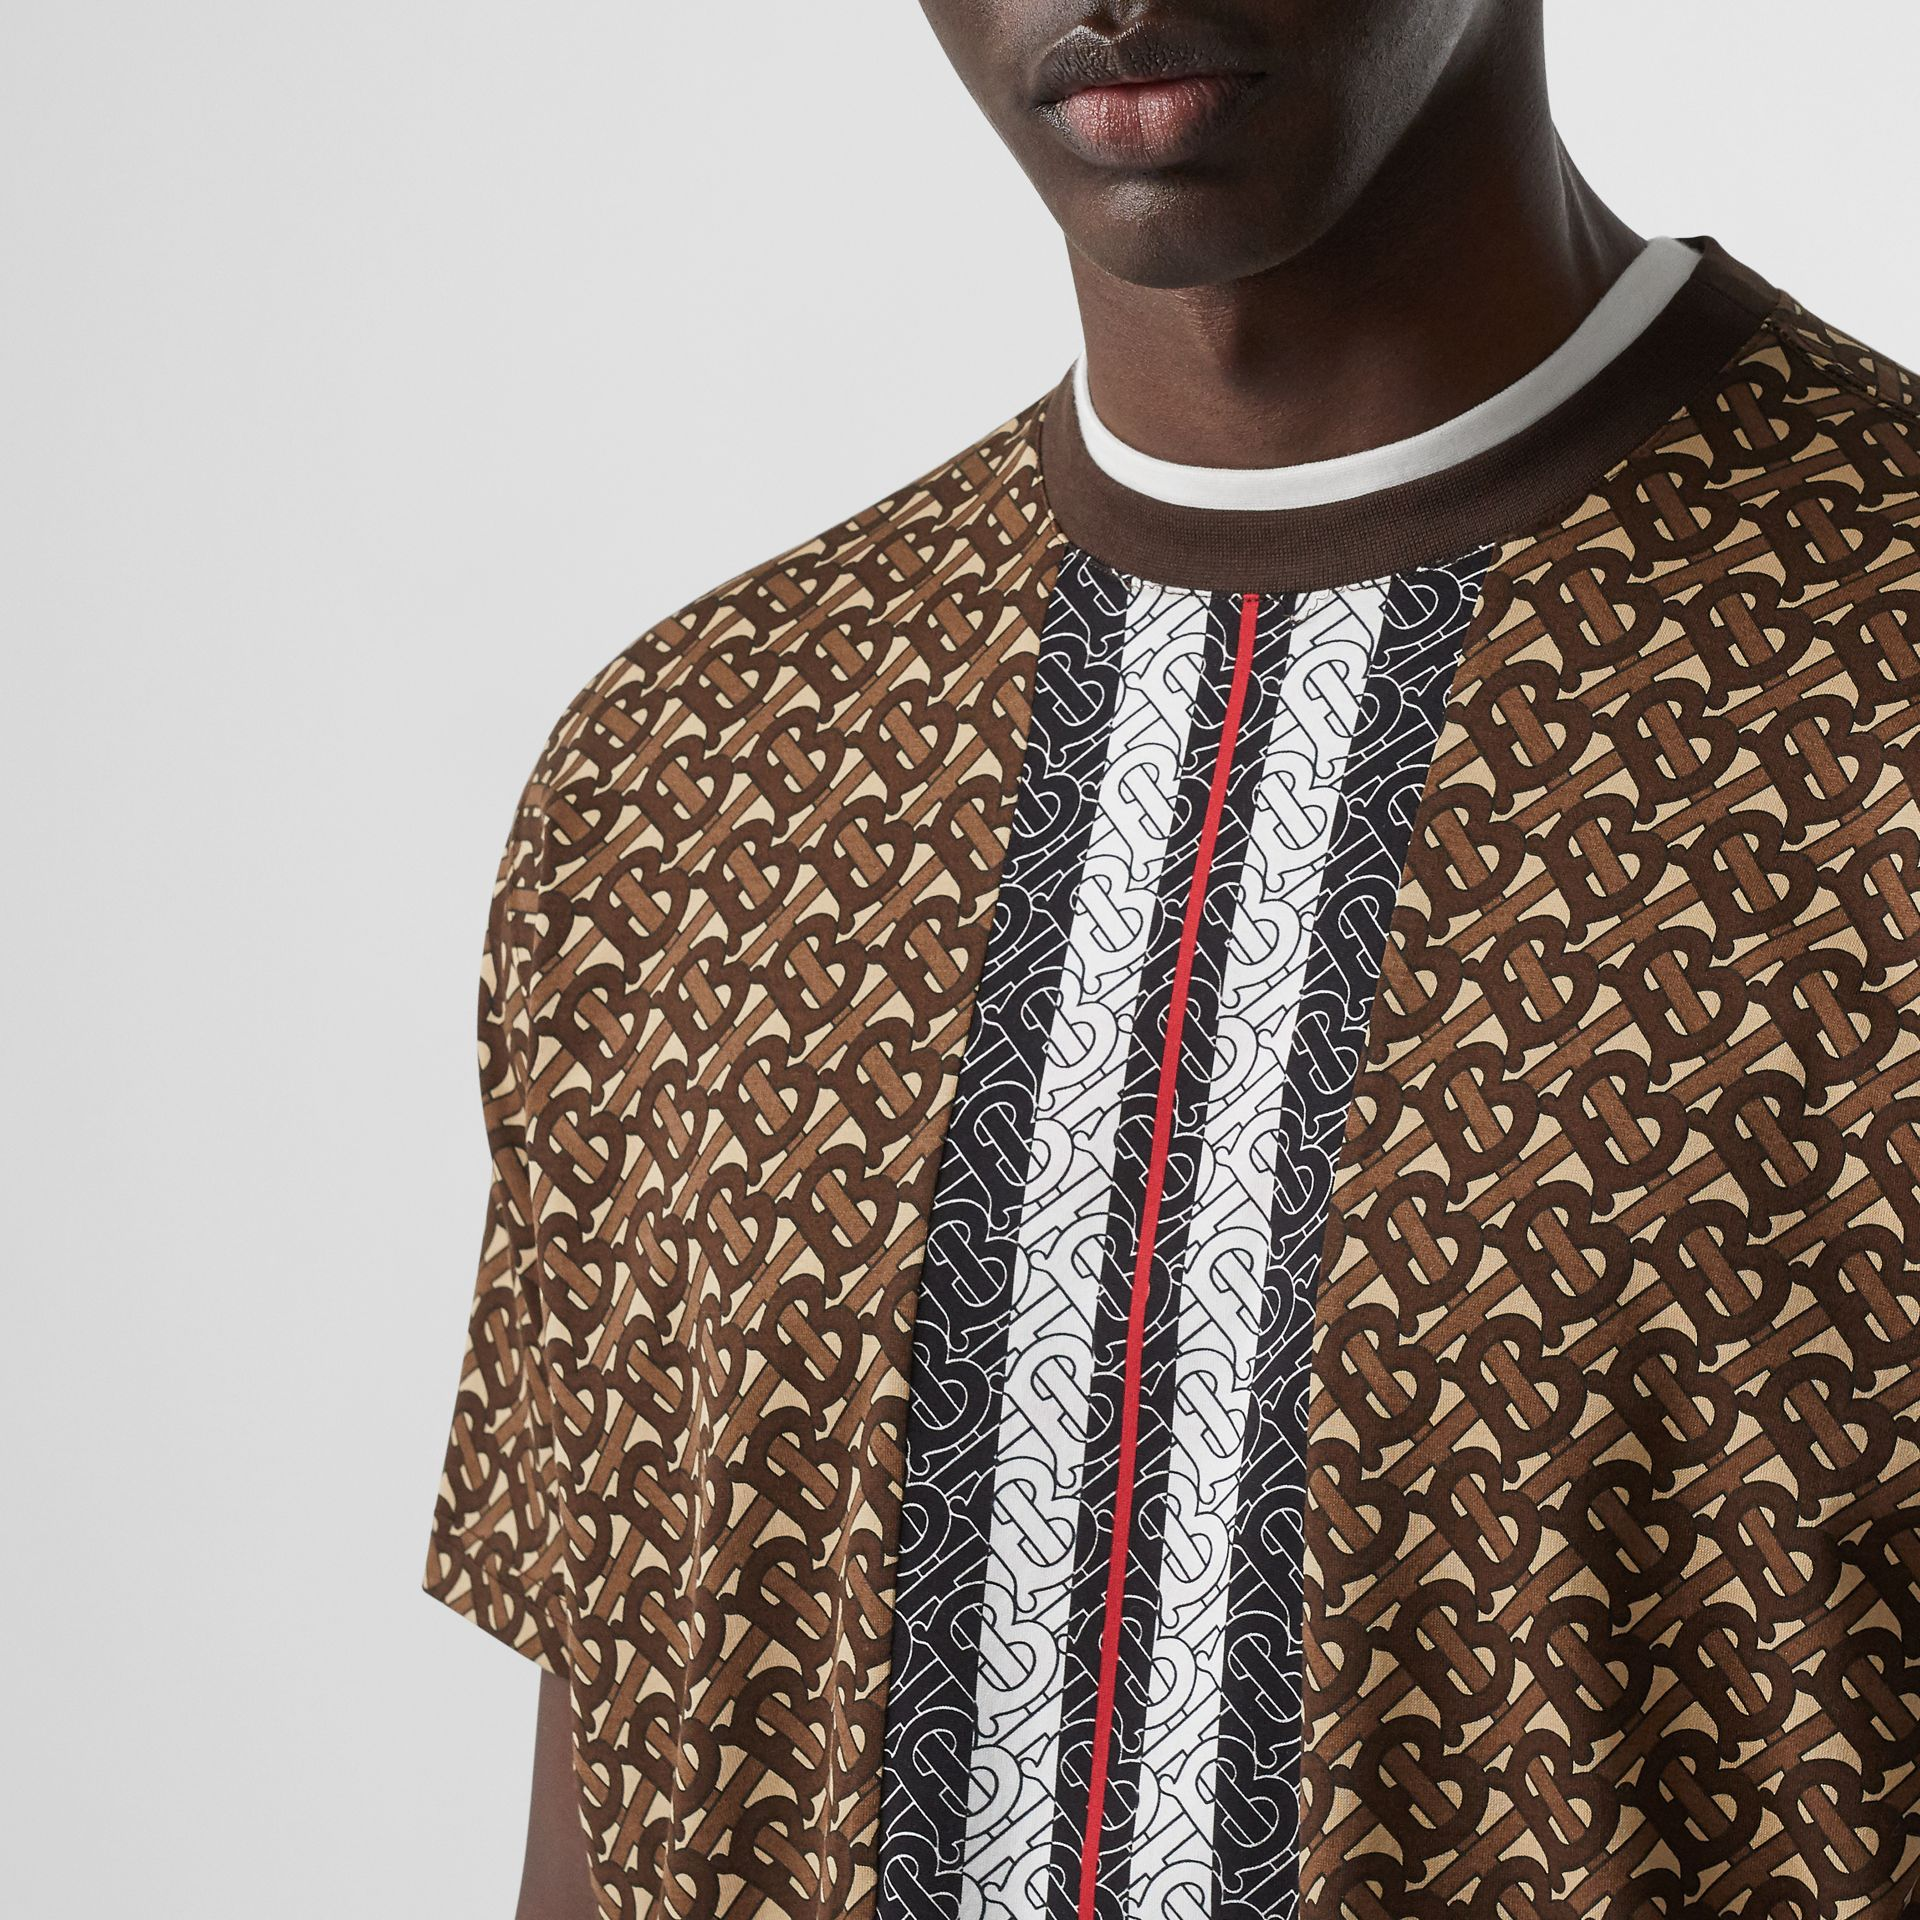 Monogram Stripe Print Cotton T-shirt in Bridle Brown - Men | Burberry - gallery image 6